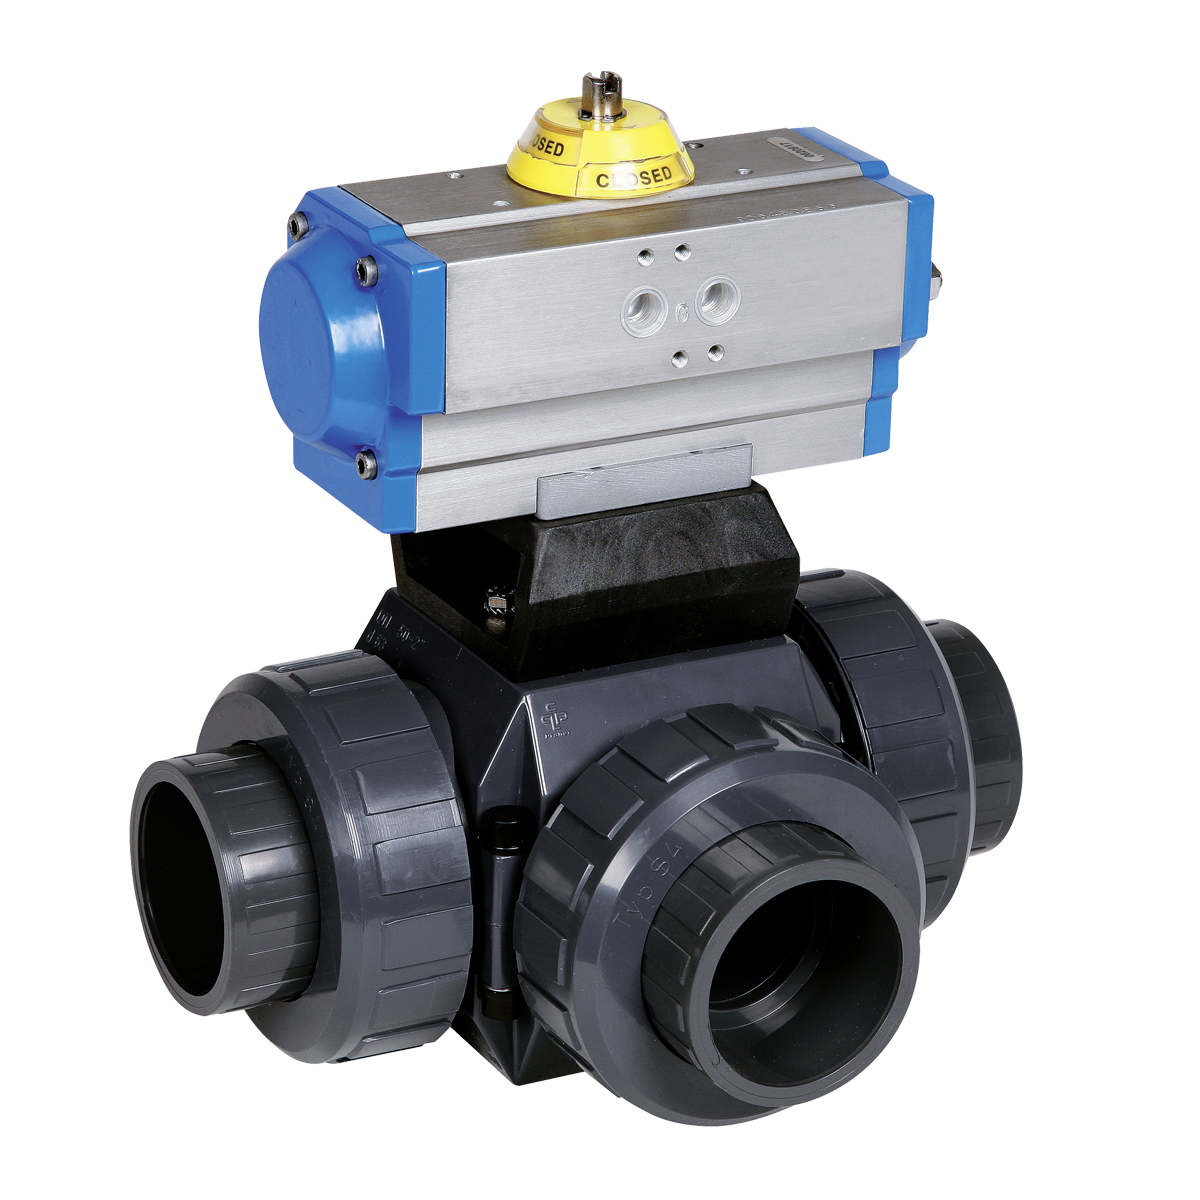 Praher 3-way Ball Valve S4 PVC-U Pneumatic Actuator - Praher